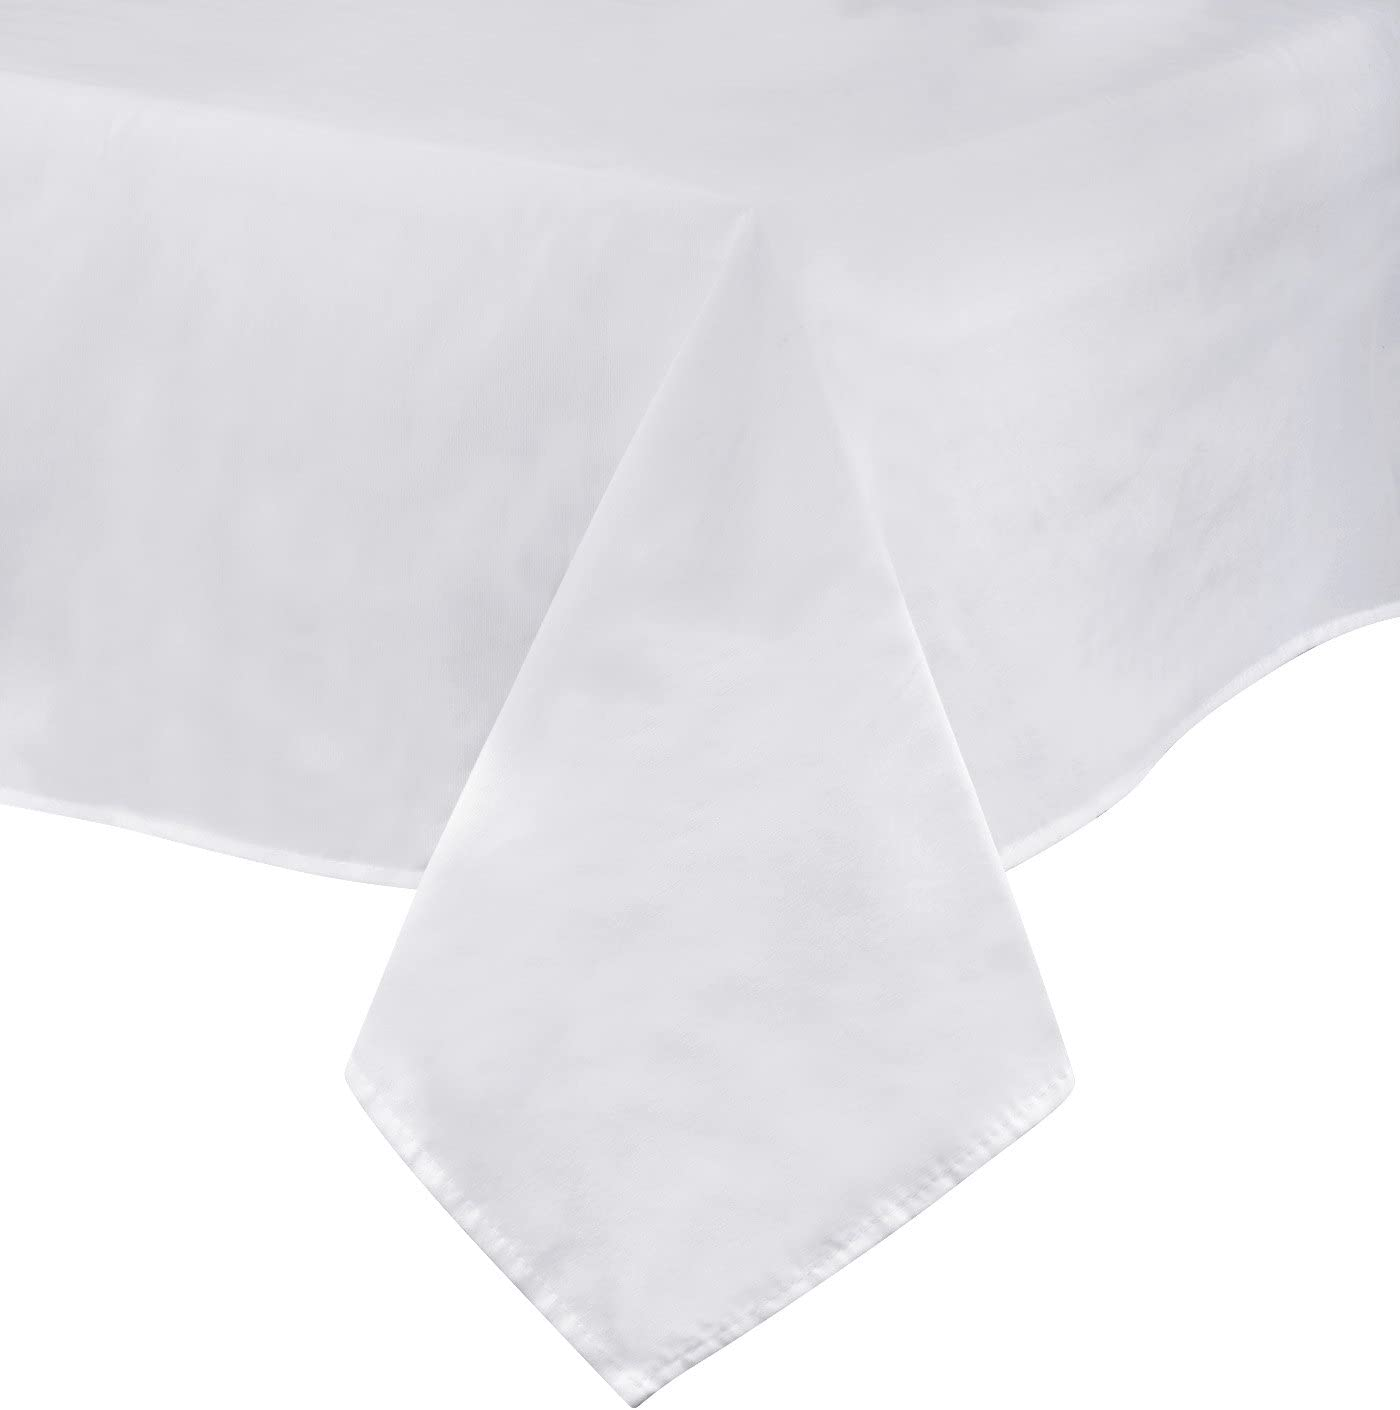 Solid Wearproof Water-resistant Tablecloth Cotton Linen Table Cover Print Decor